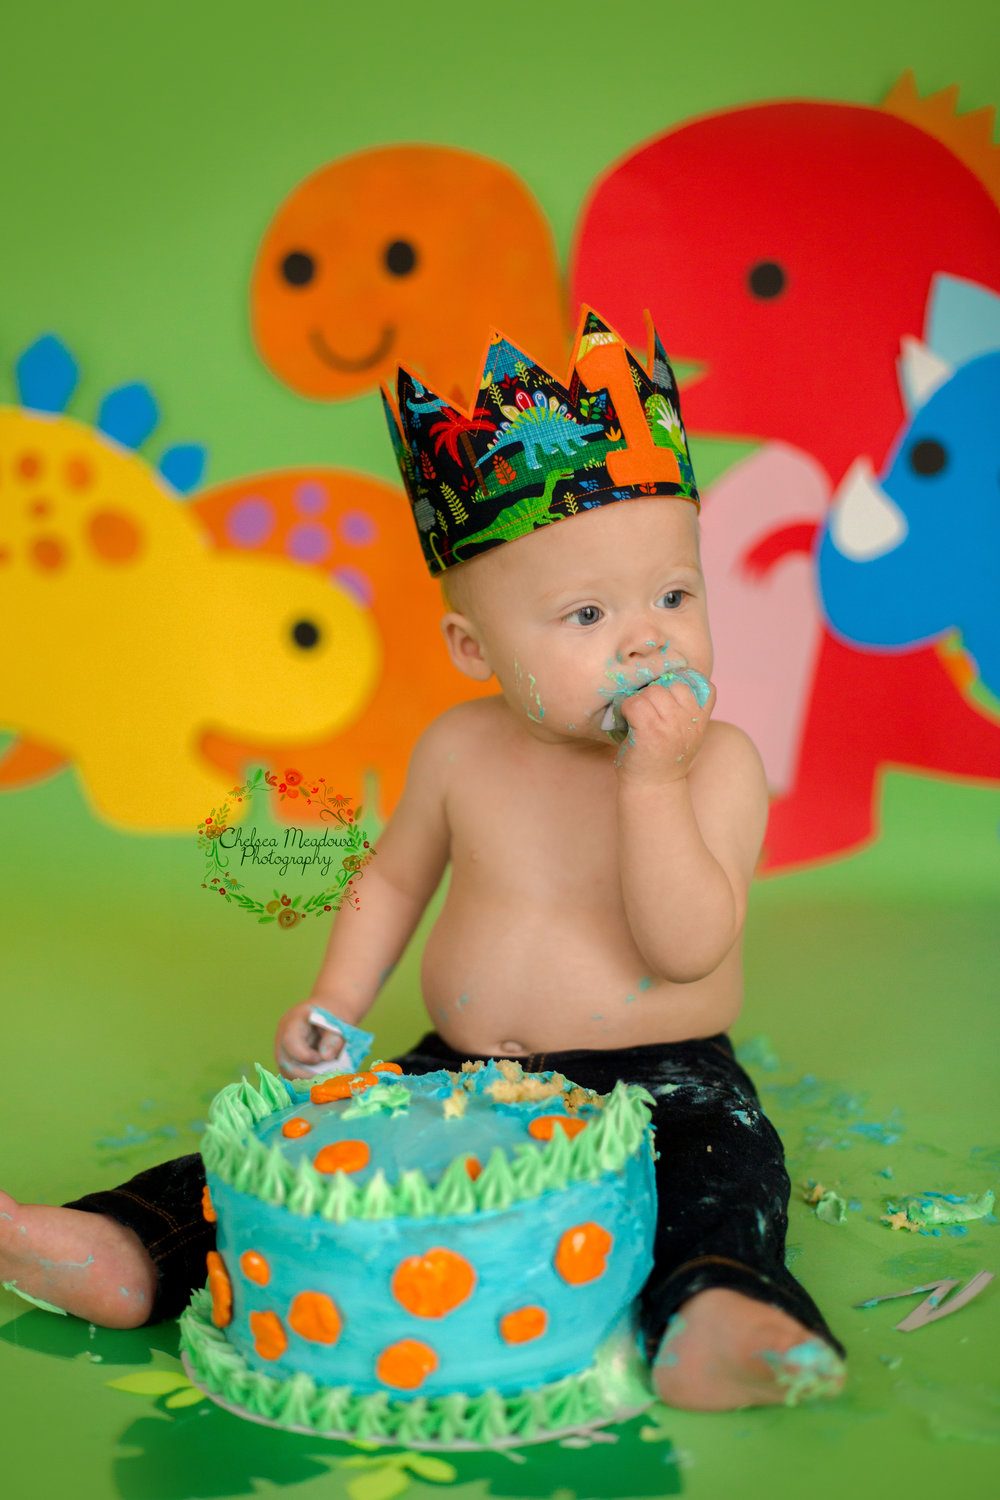 Owen First Birthday - Nashville Family Photographer - Chelsea Meadows Photography (96).jpg